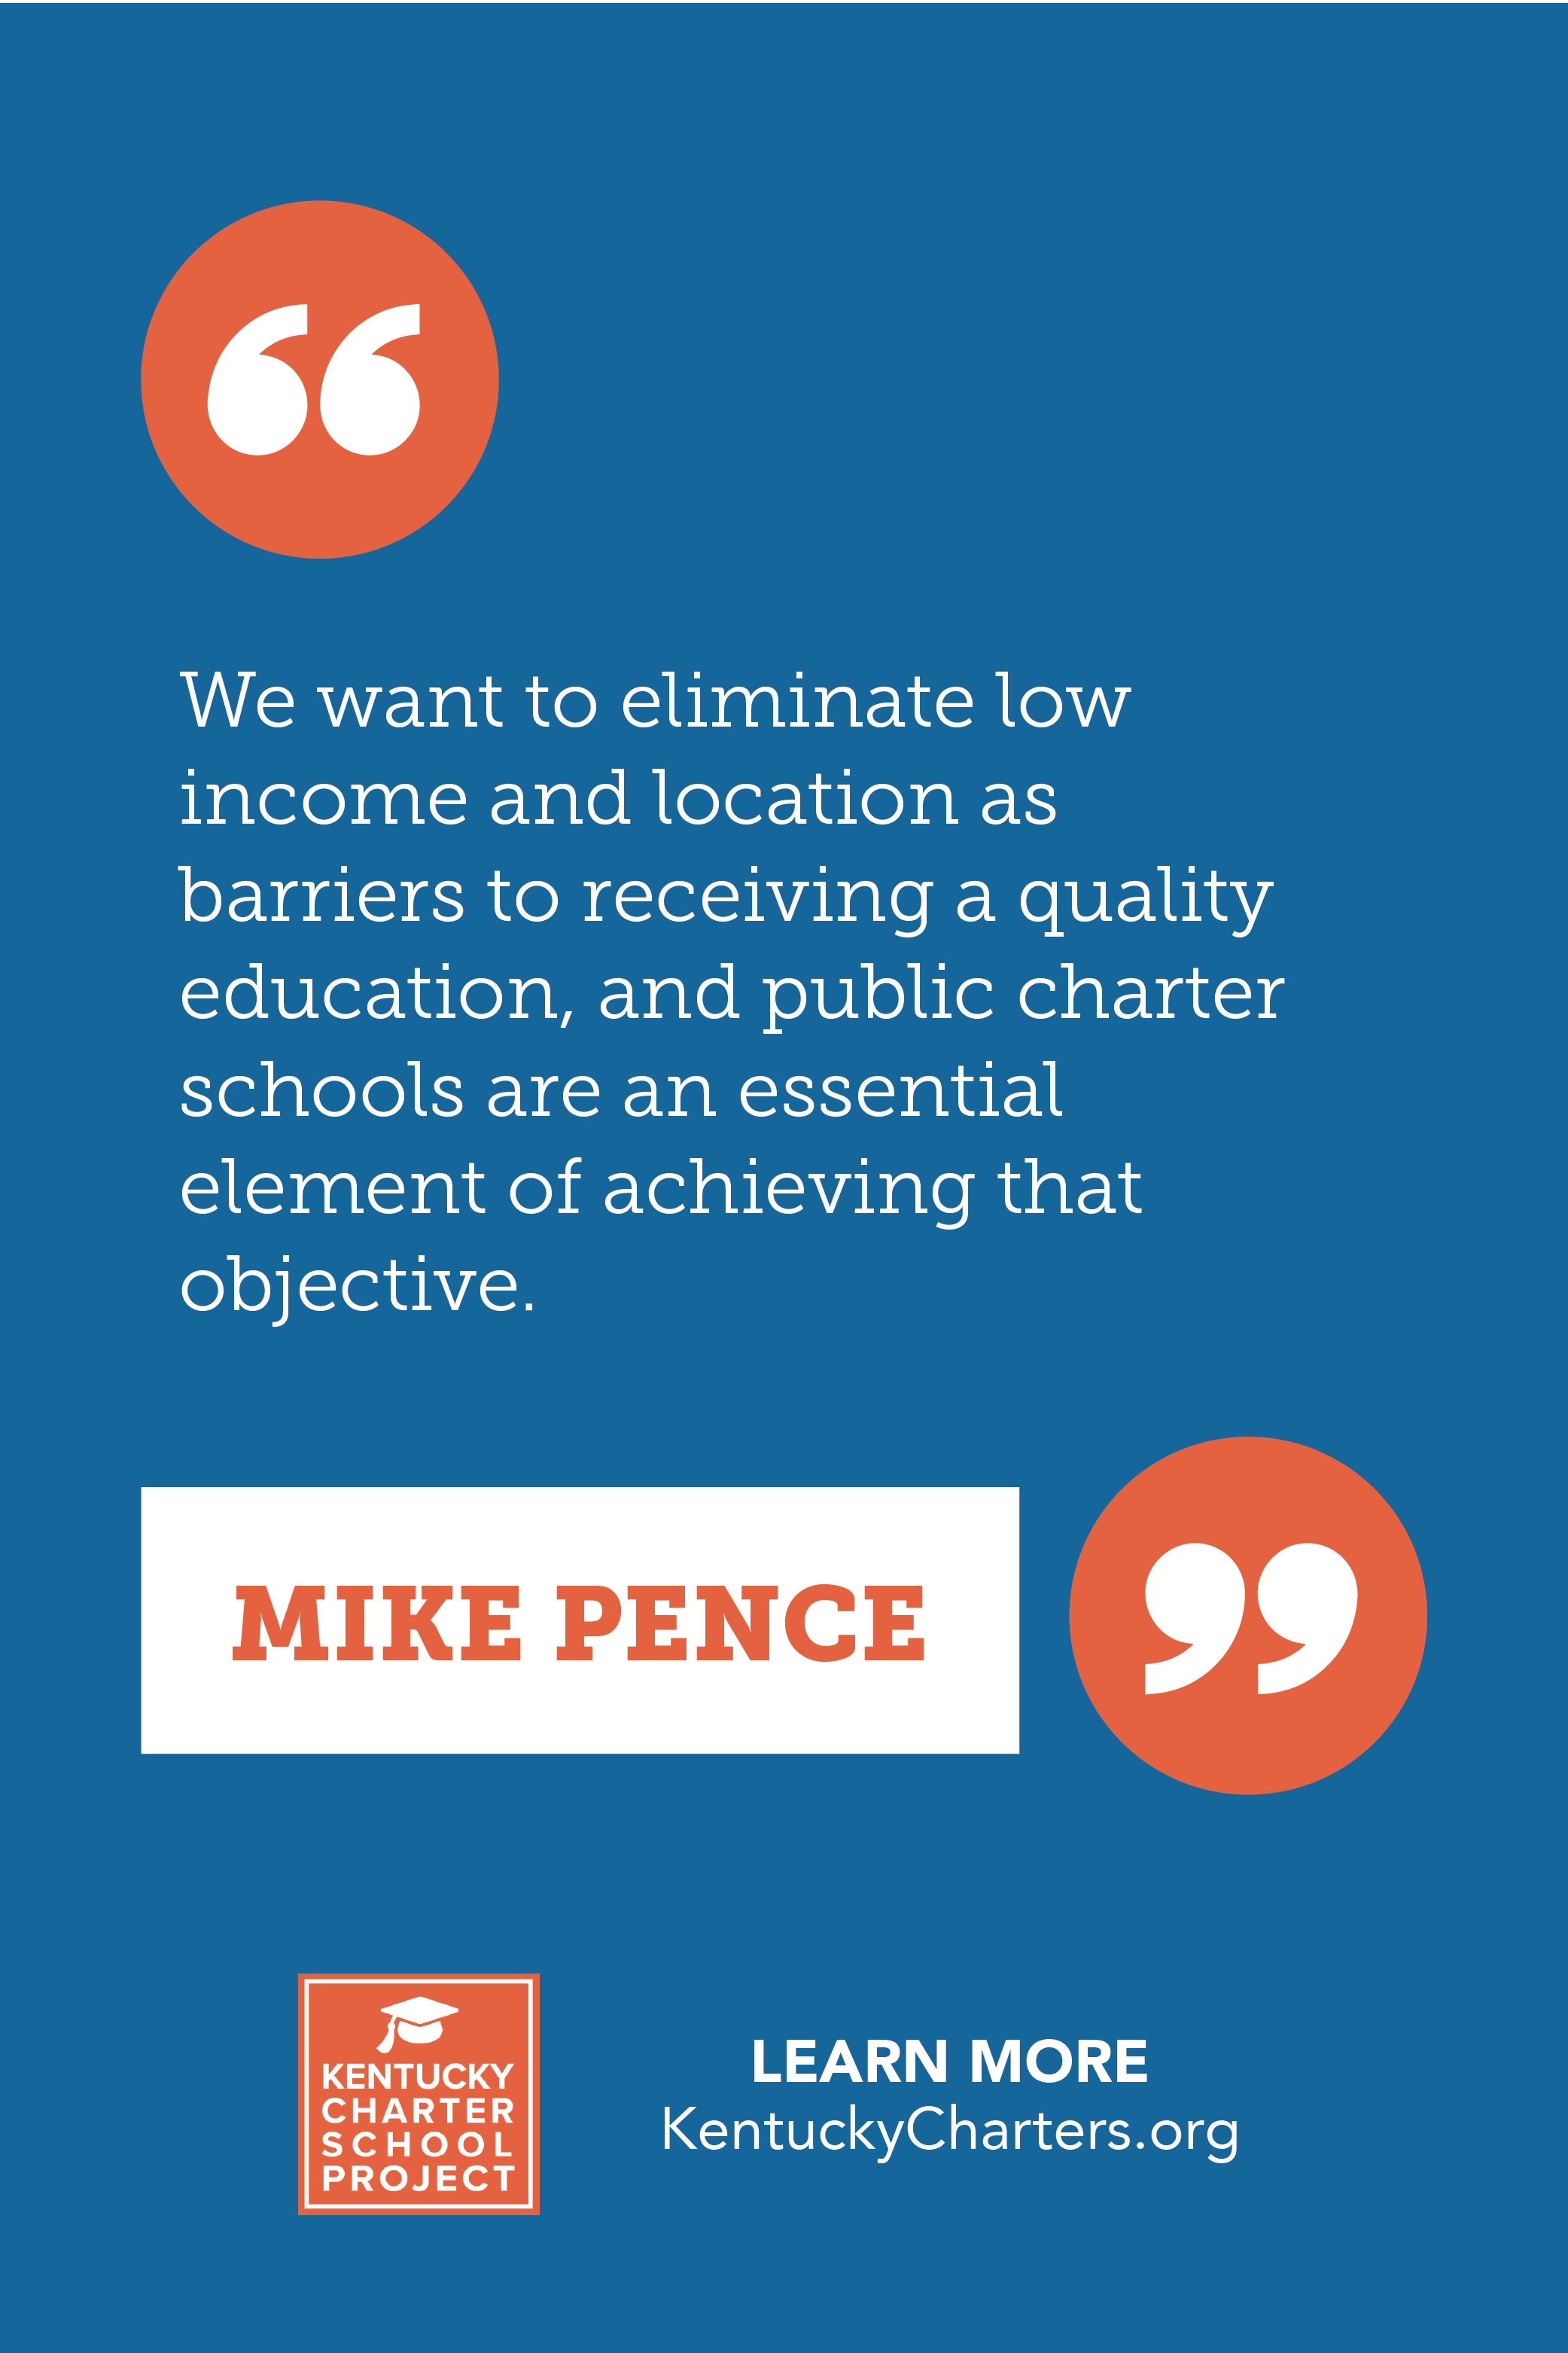 pence_quote-01.png